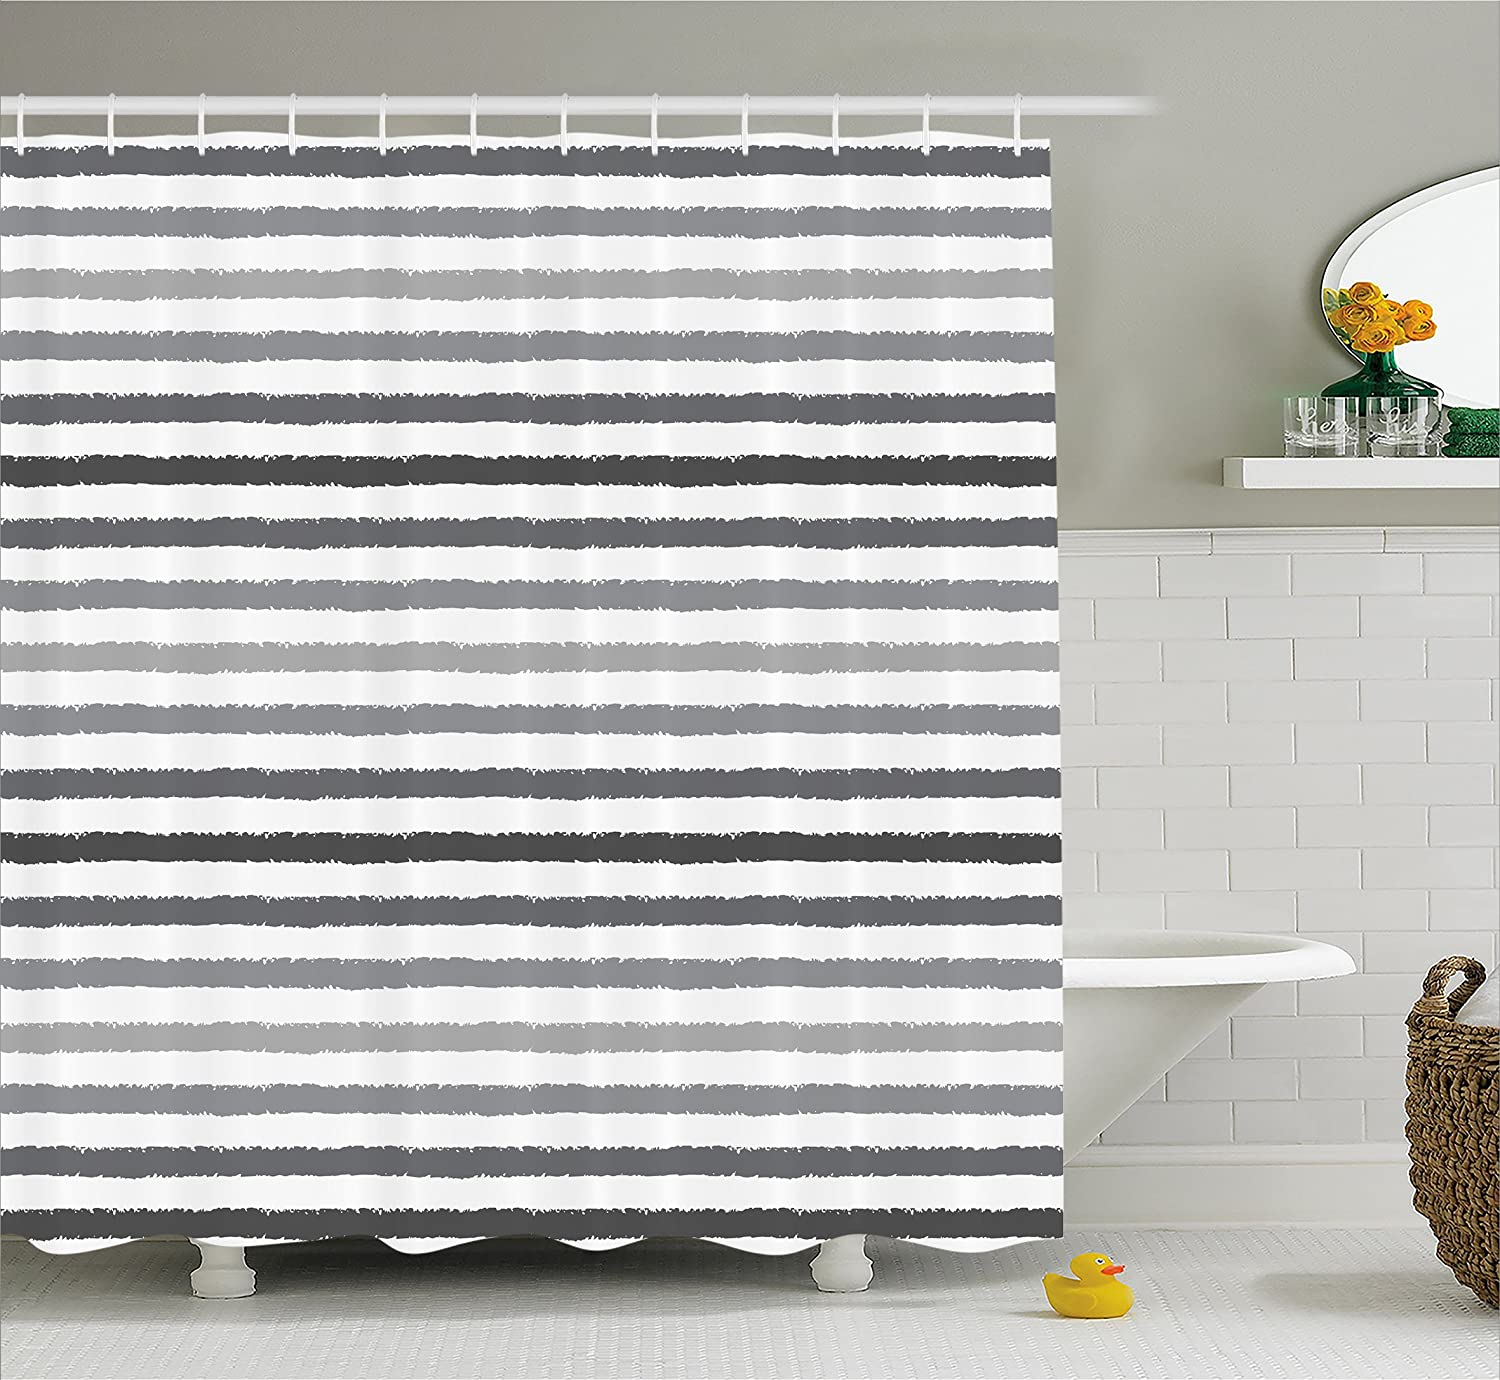 Ambesonne Striped Shower Curtain Set Gray And White Stripes Monochrome Tones Brush Style Lines Grunge Retro Digital Printed Fabric Bathroom Decor With